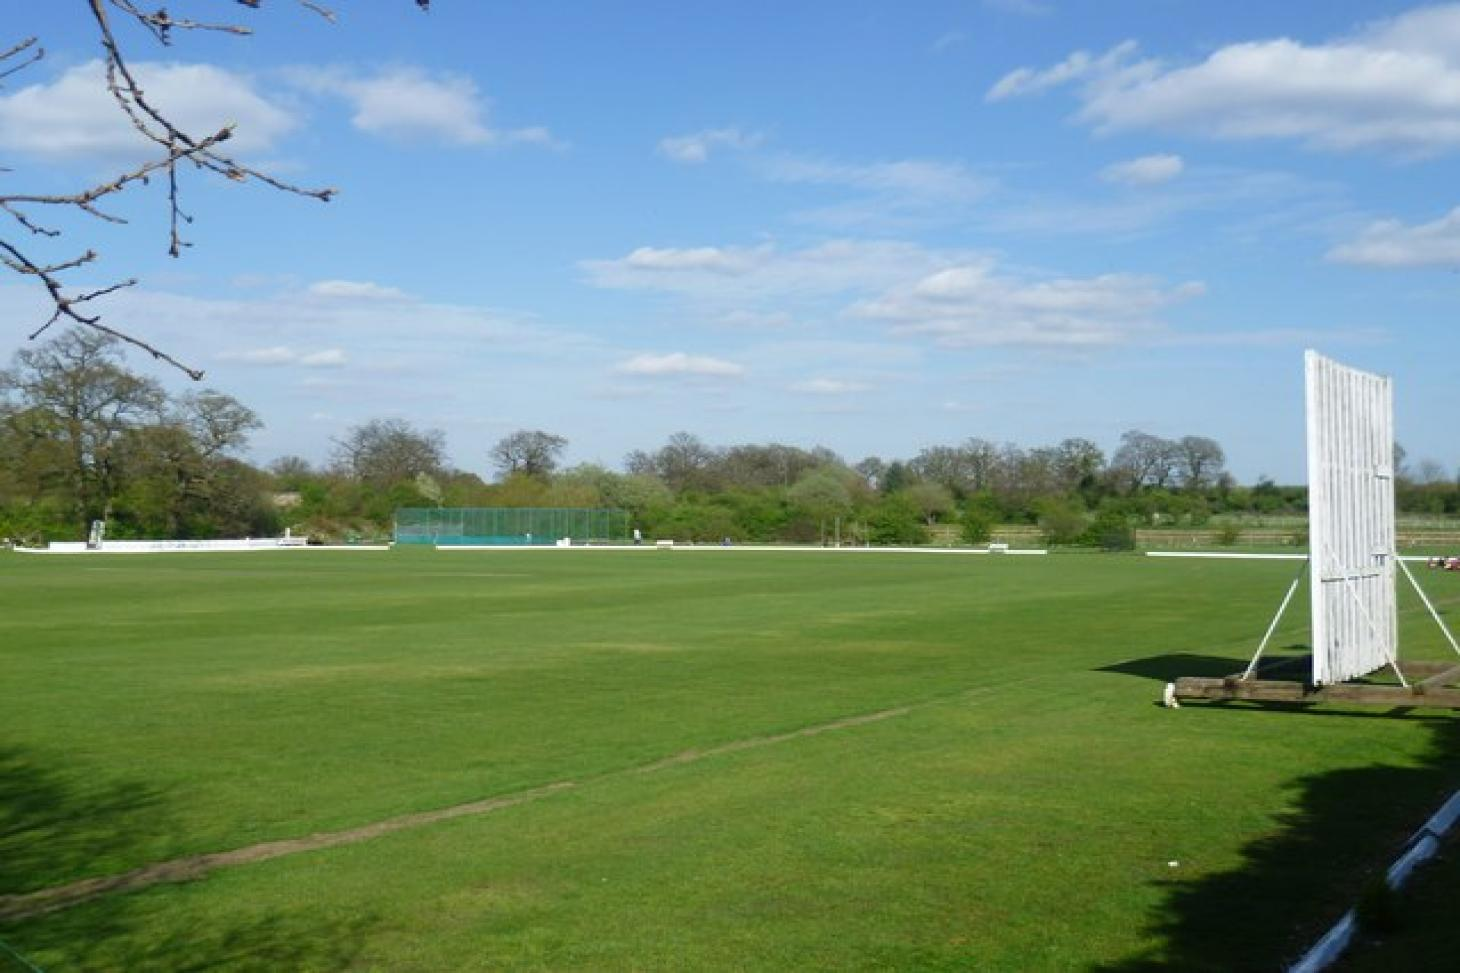 Bromley Common Cricket Club Full size | Grass cricket facilities